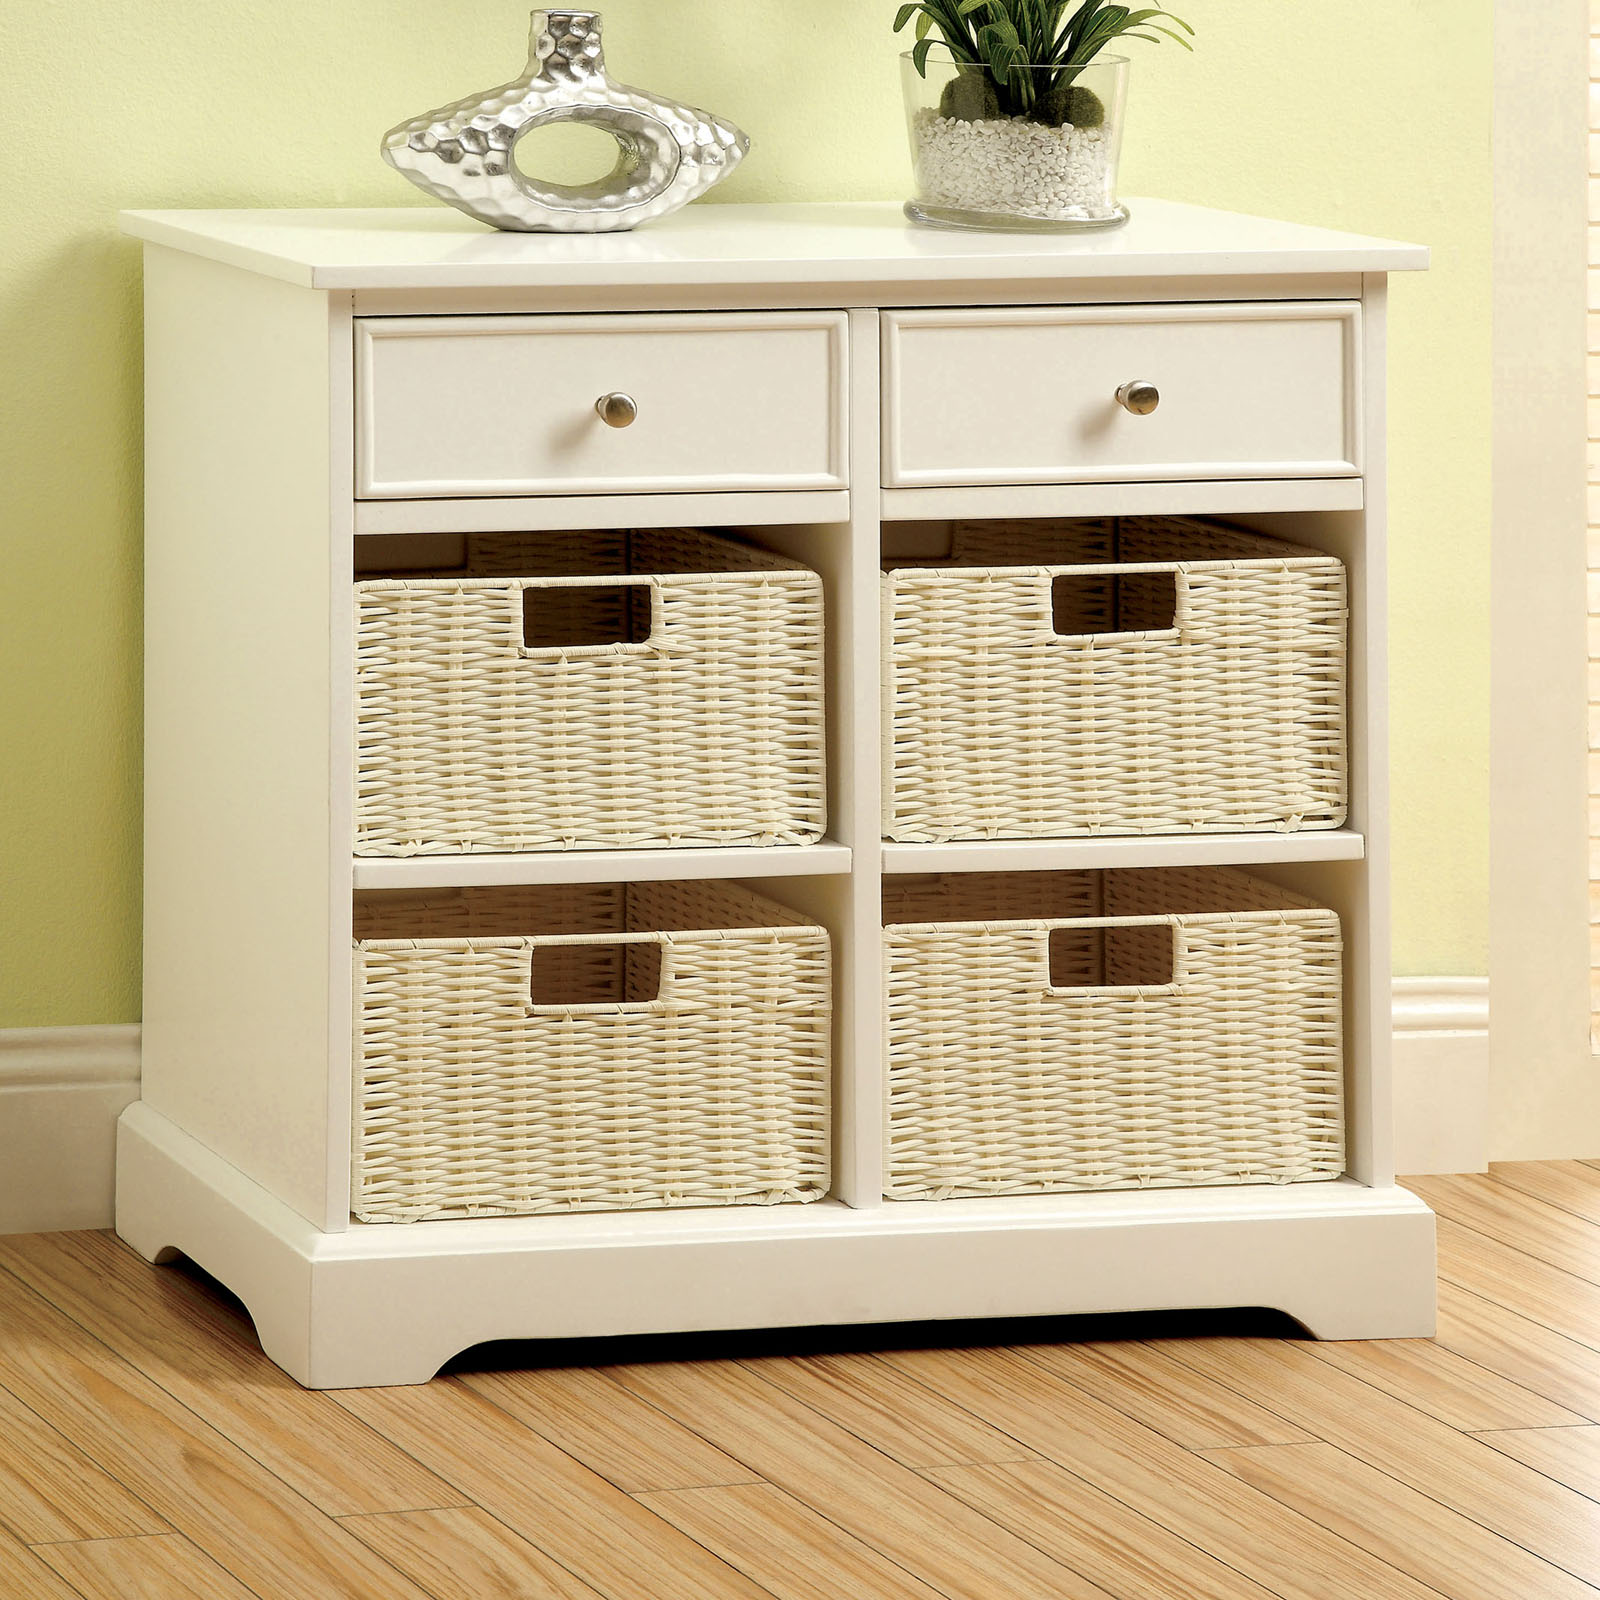 Furniture of america renoir multi storage cabinet console white console tables at hayneedle - Sofa table with cabinets ...